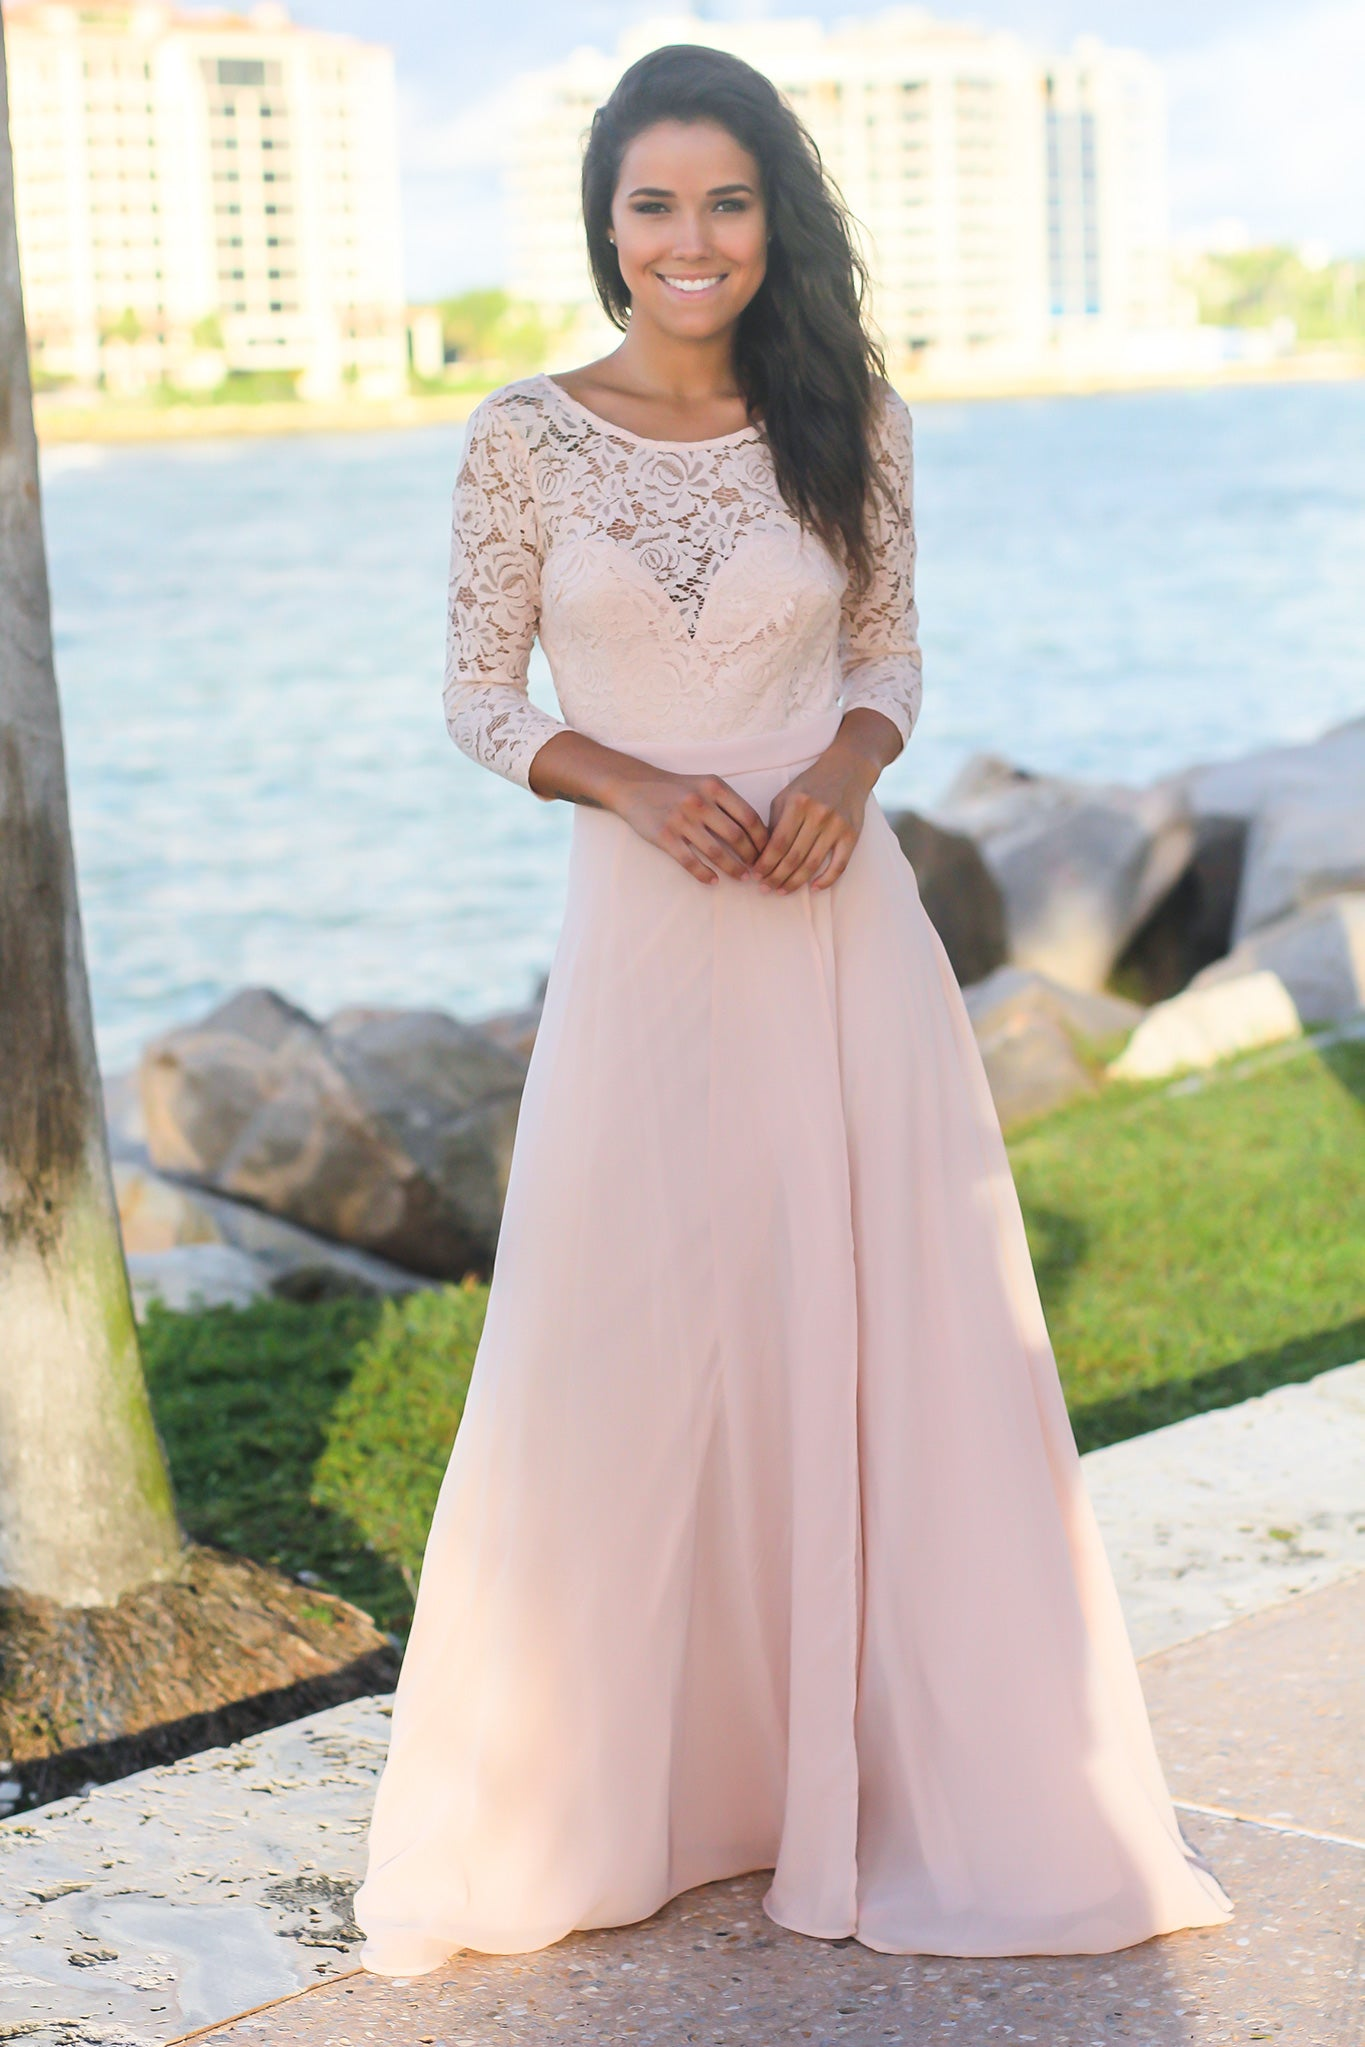 Blush Lace Maxi Dress with 3/4 Sleeves